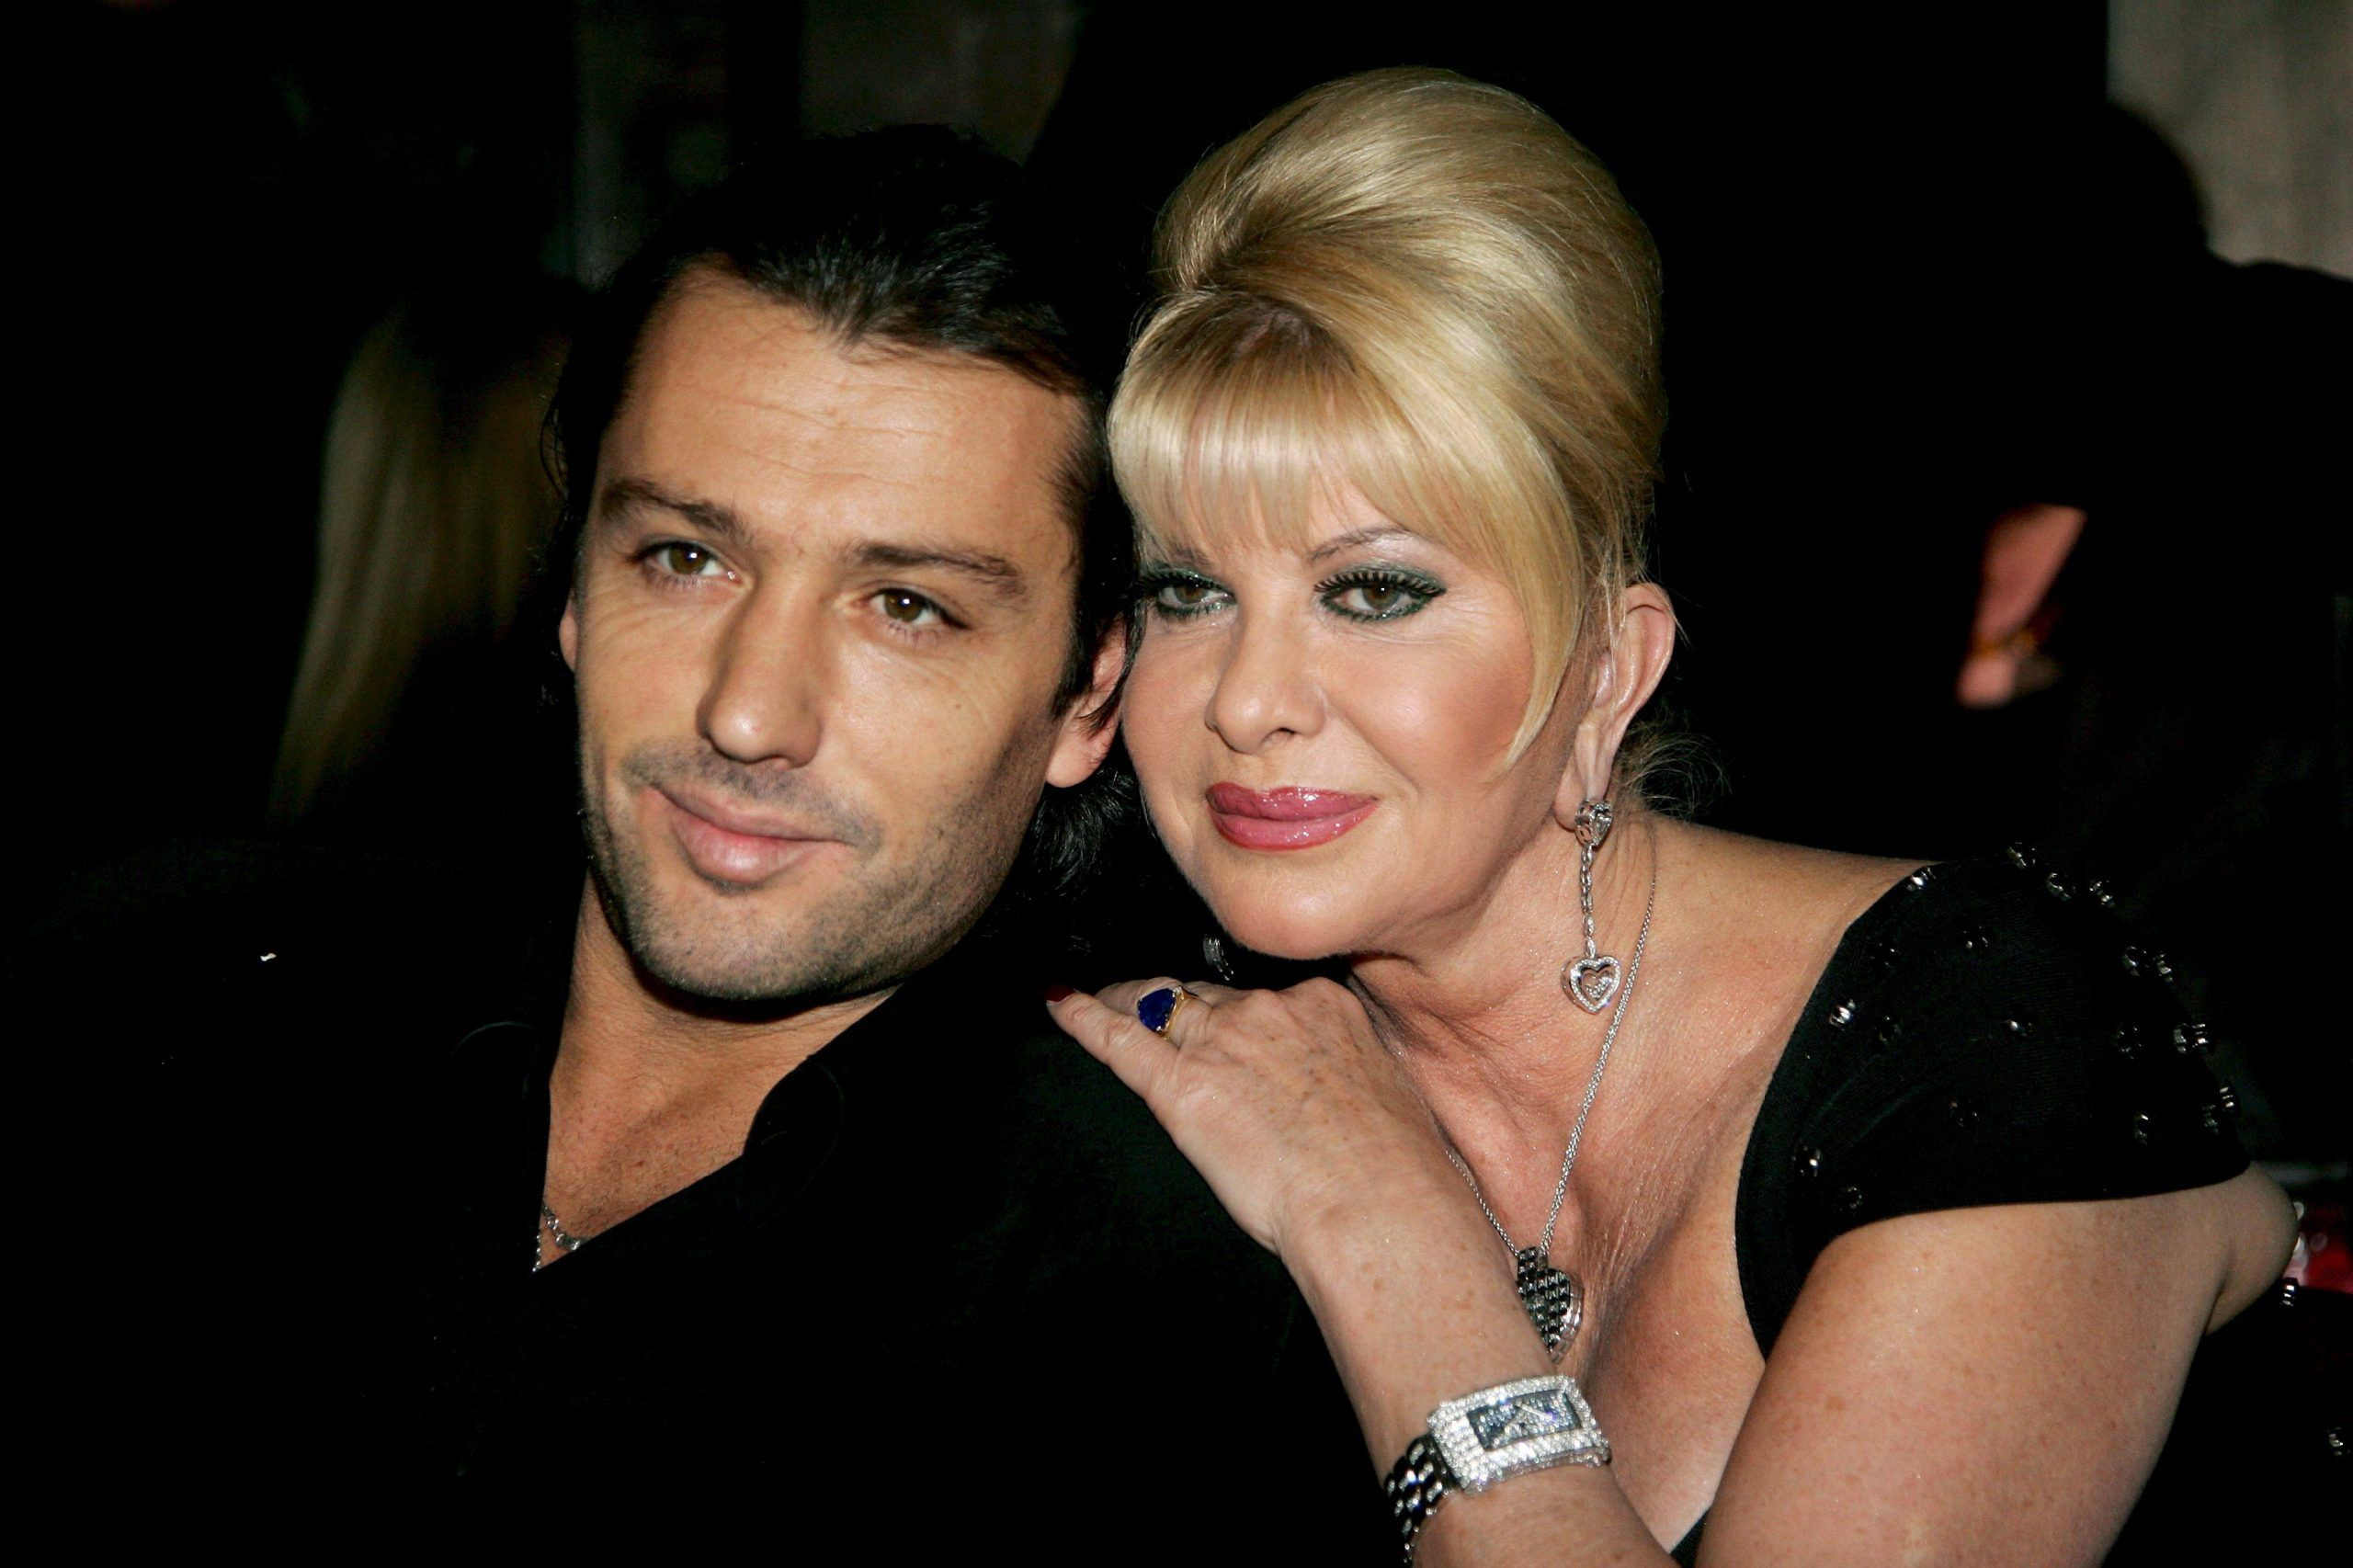 Ivana Trump, Czech born businesswoman and former Olympic athelete